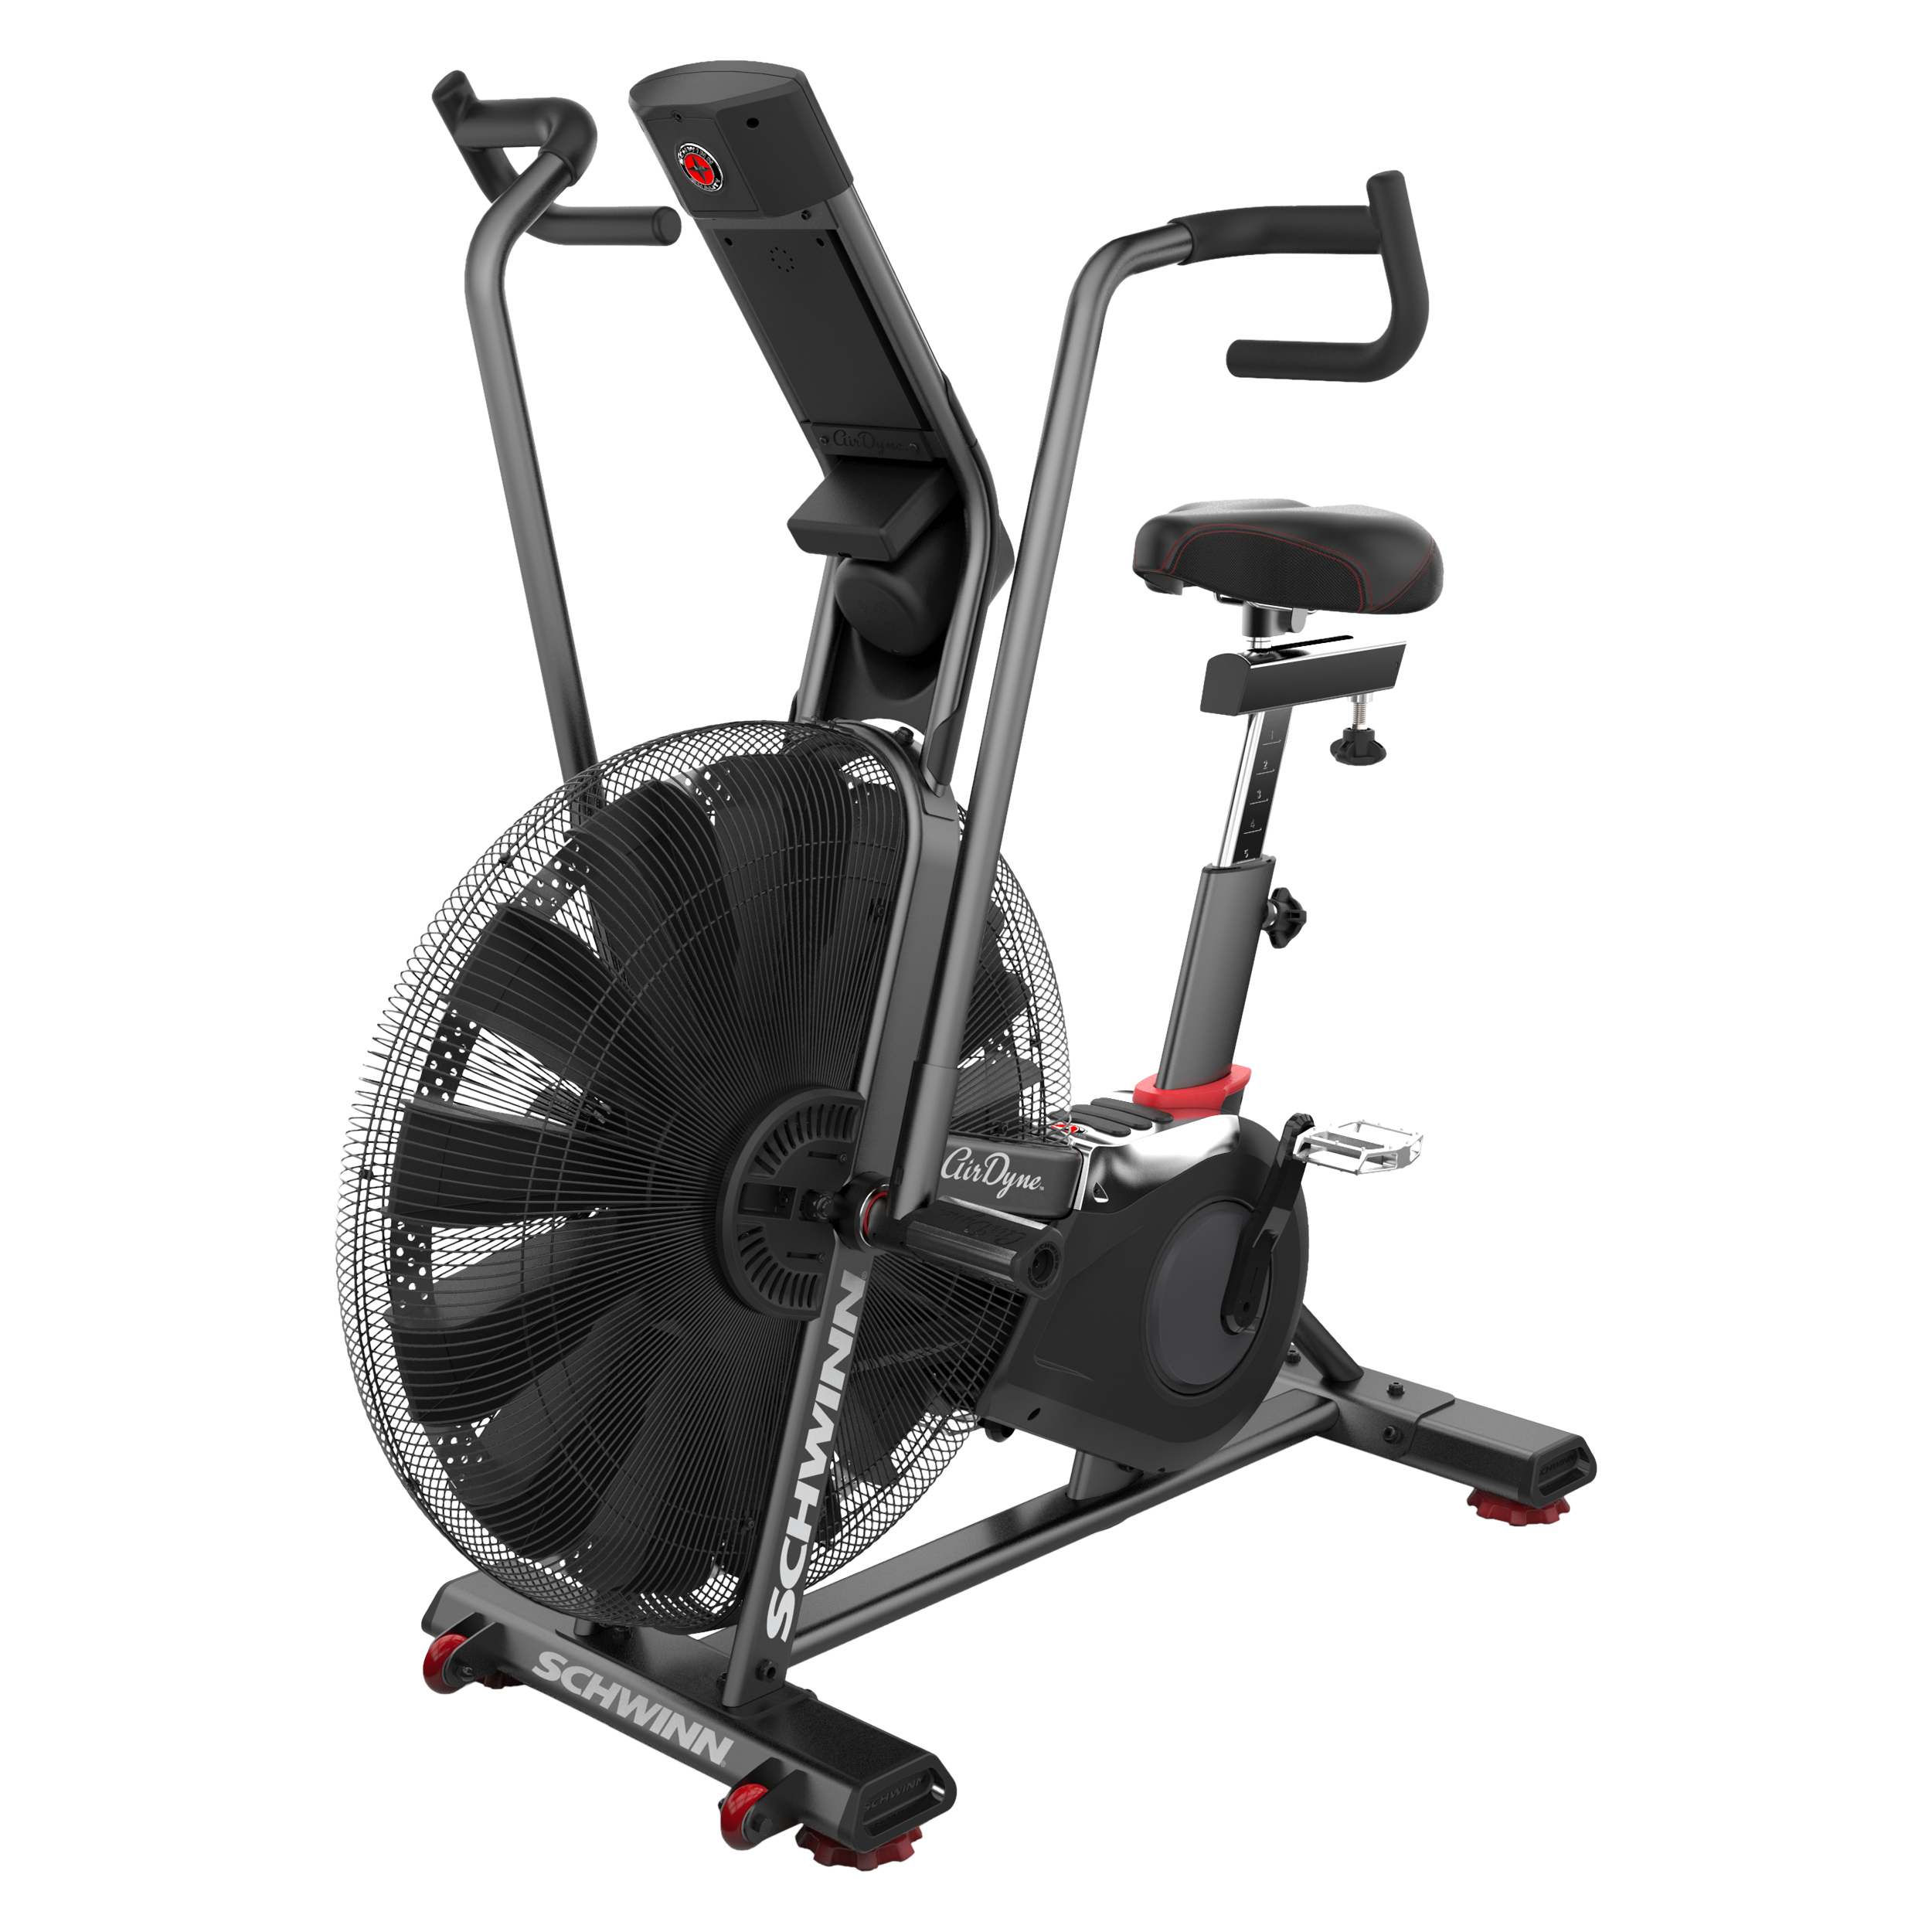 Schwinn Upright Bike  - High resistance and reduced noise - Measures heart rate in real time - Multi-position hand grips provide a variety of workout choices